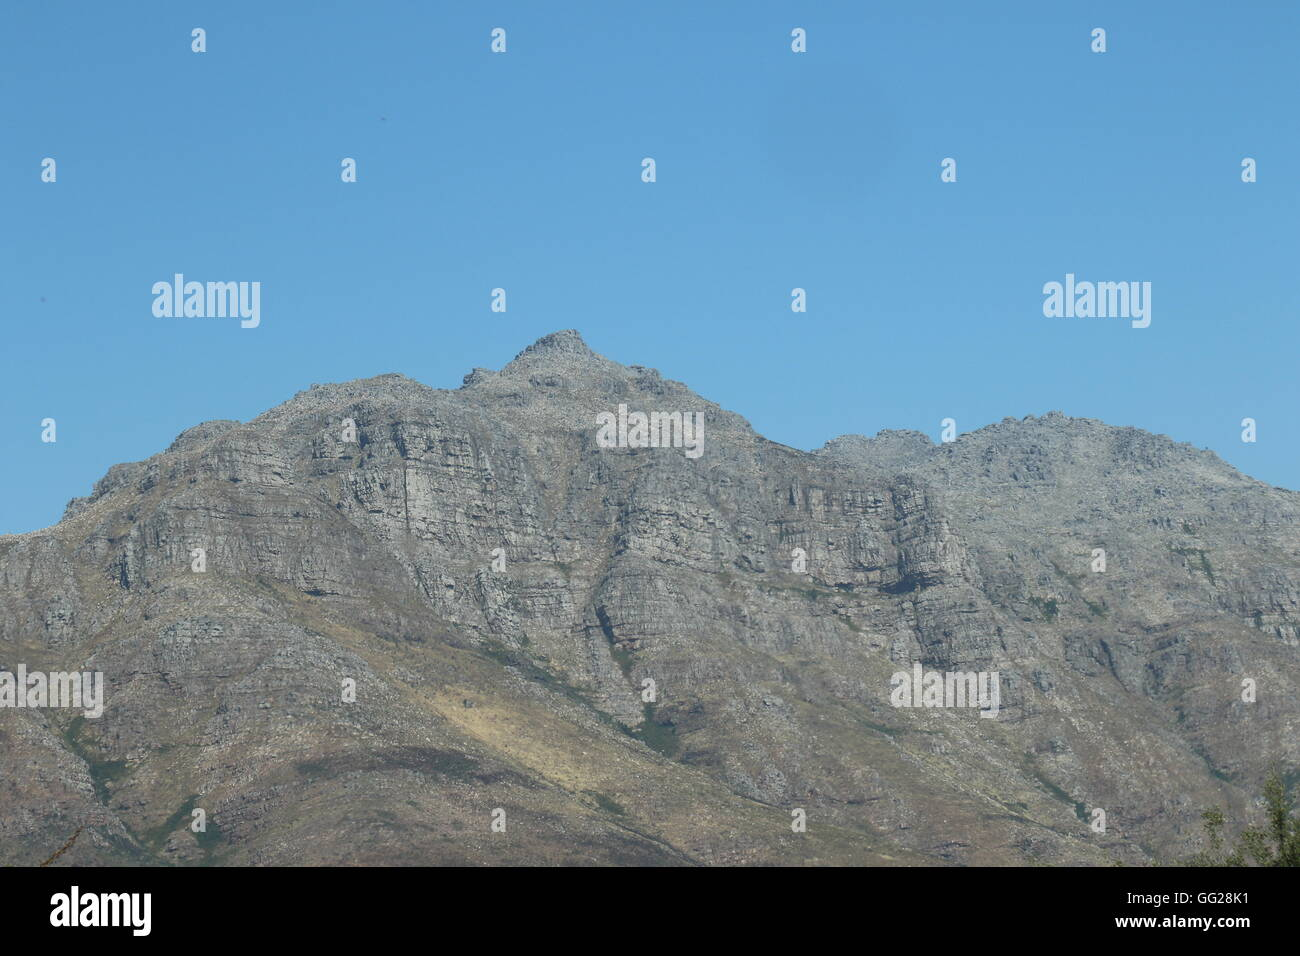 Mountains at Aaldering Vineyard and Wines, Stellenbosch, South Africa - Stock Image